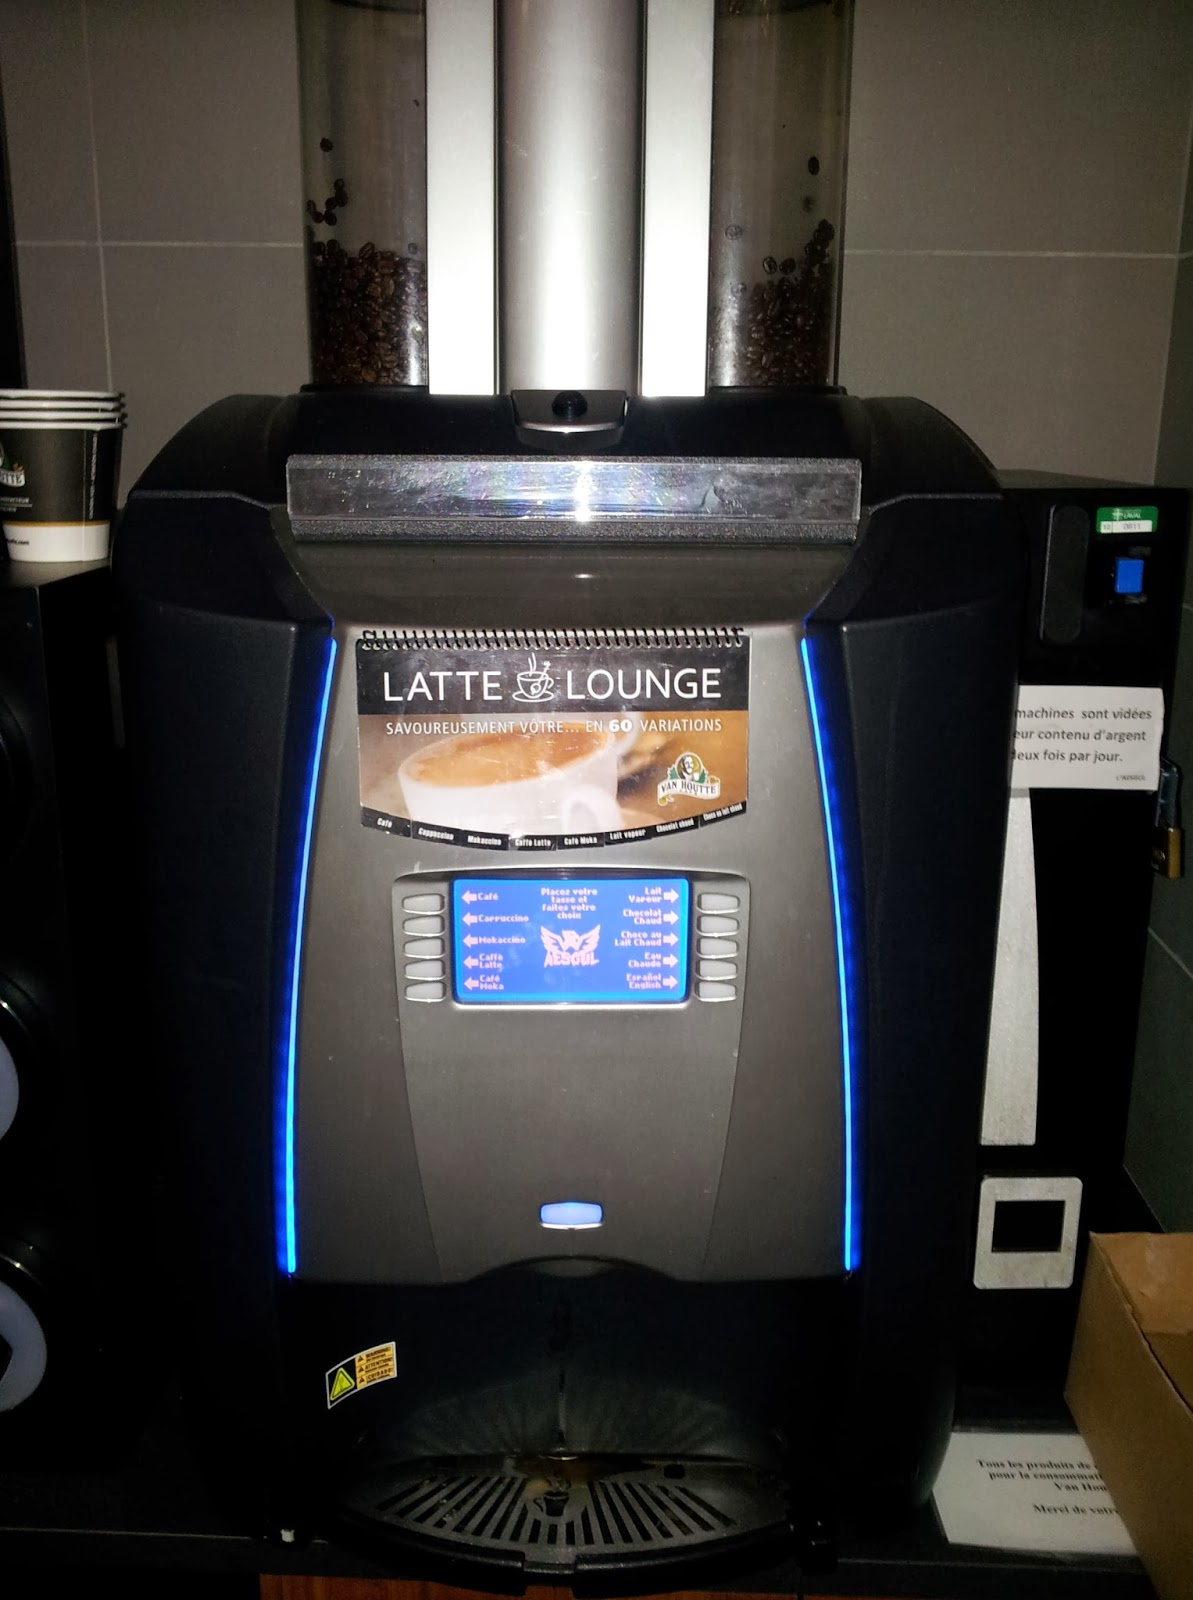 coffee, espresso, latte, vending machine, coffee beans, grinder, paper cup